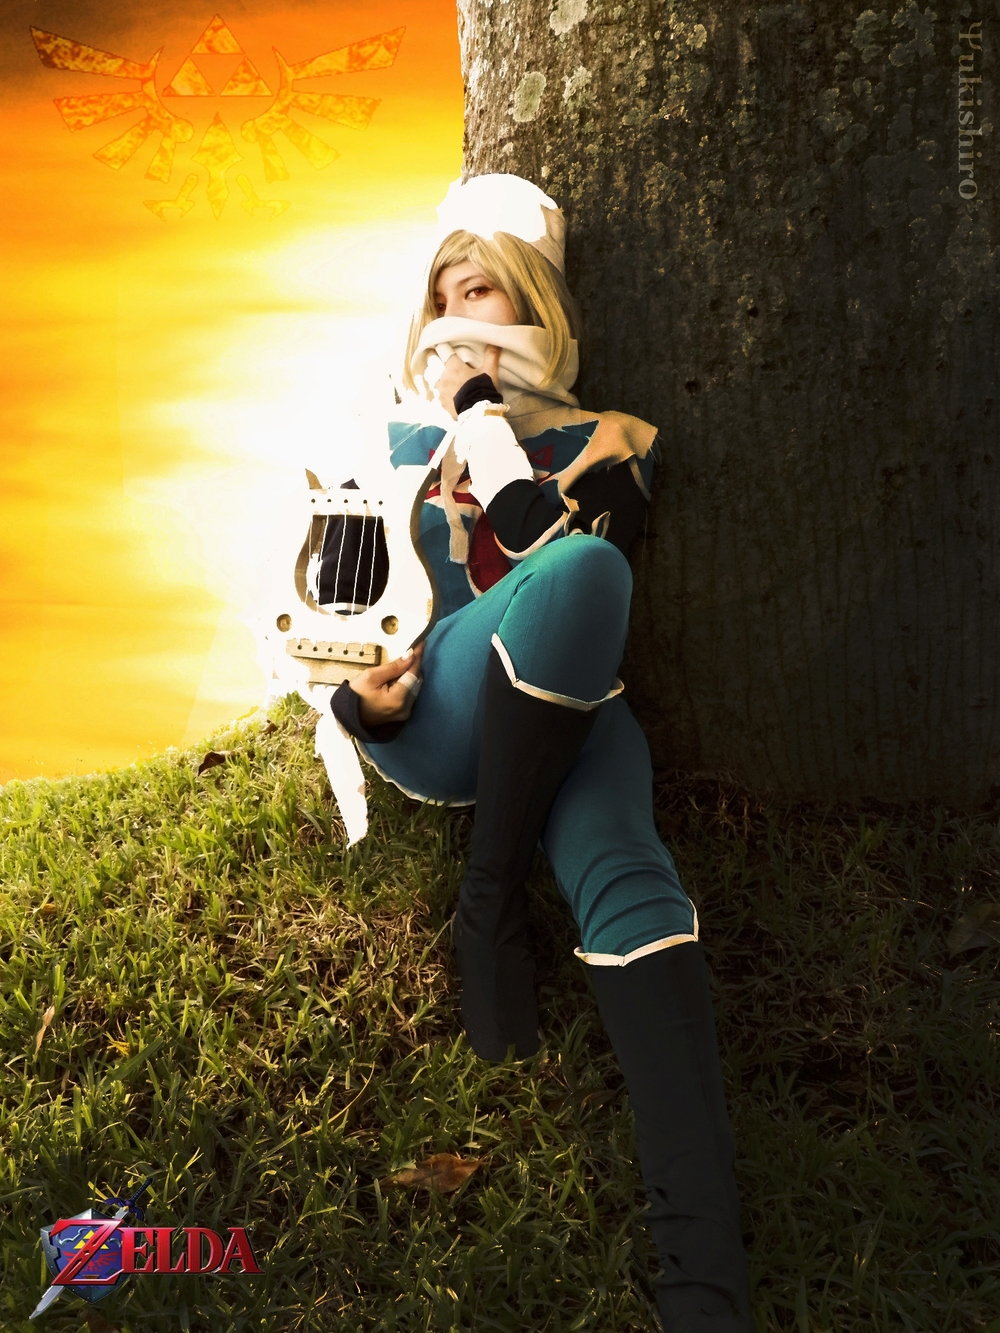 IIMishall is Zelda (Sheik) | Photo by: Yukishir0